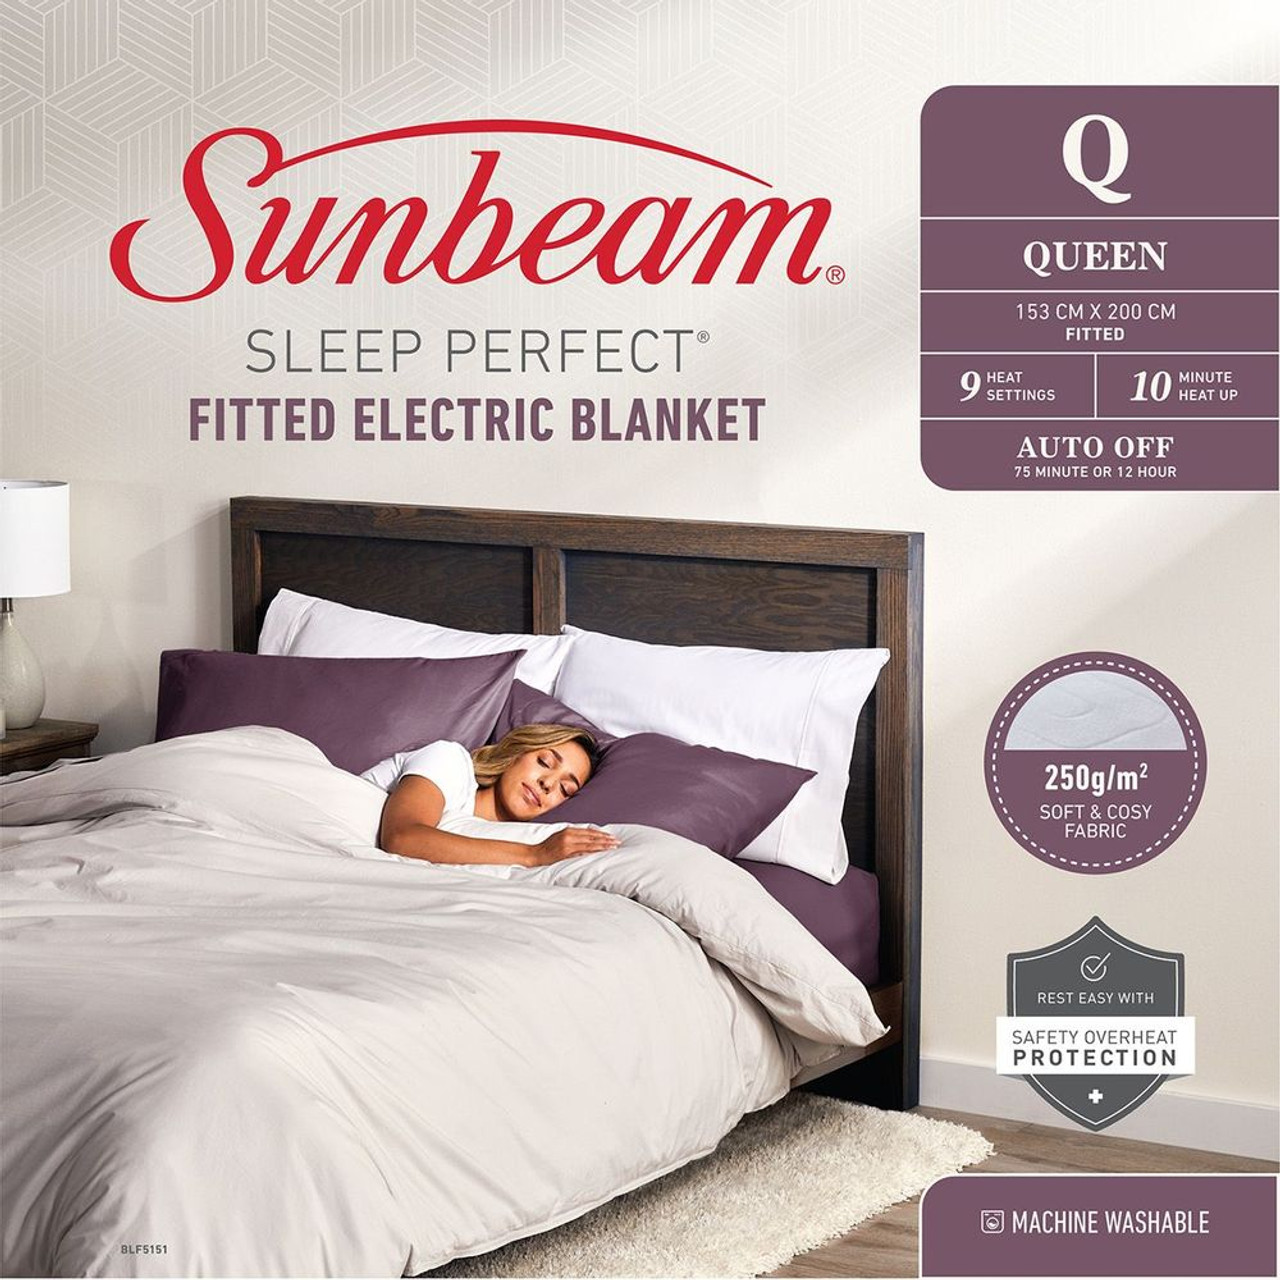 Sunbeam BLF5151 Sleep Perfect™ Fitted Heated Blanket - Queen Bed